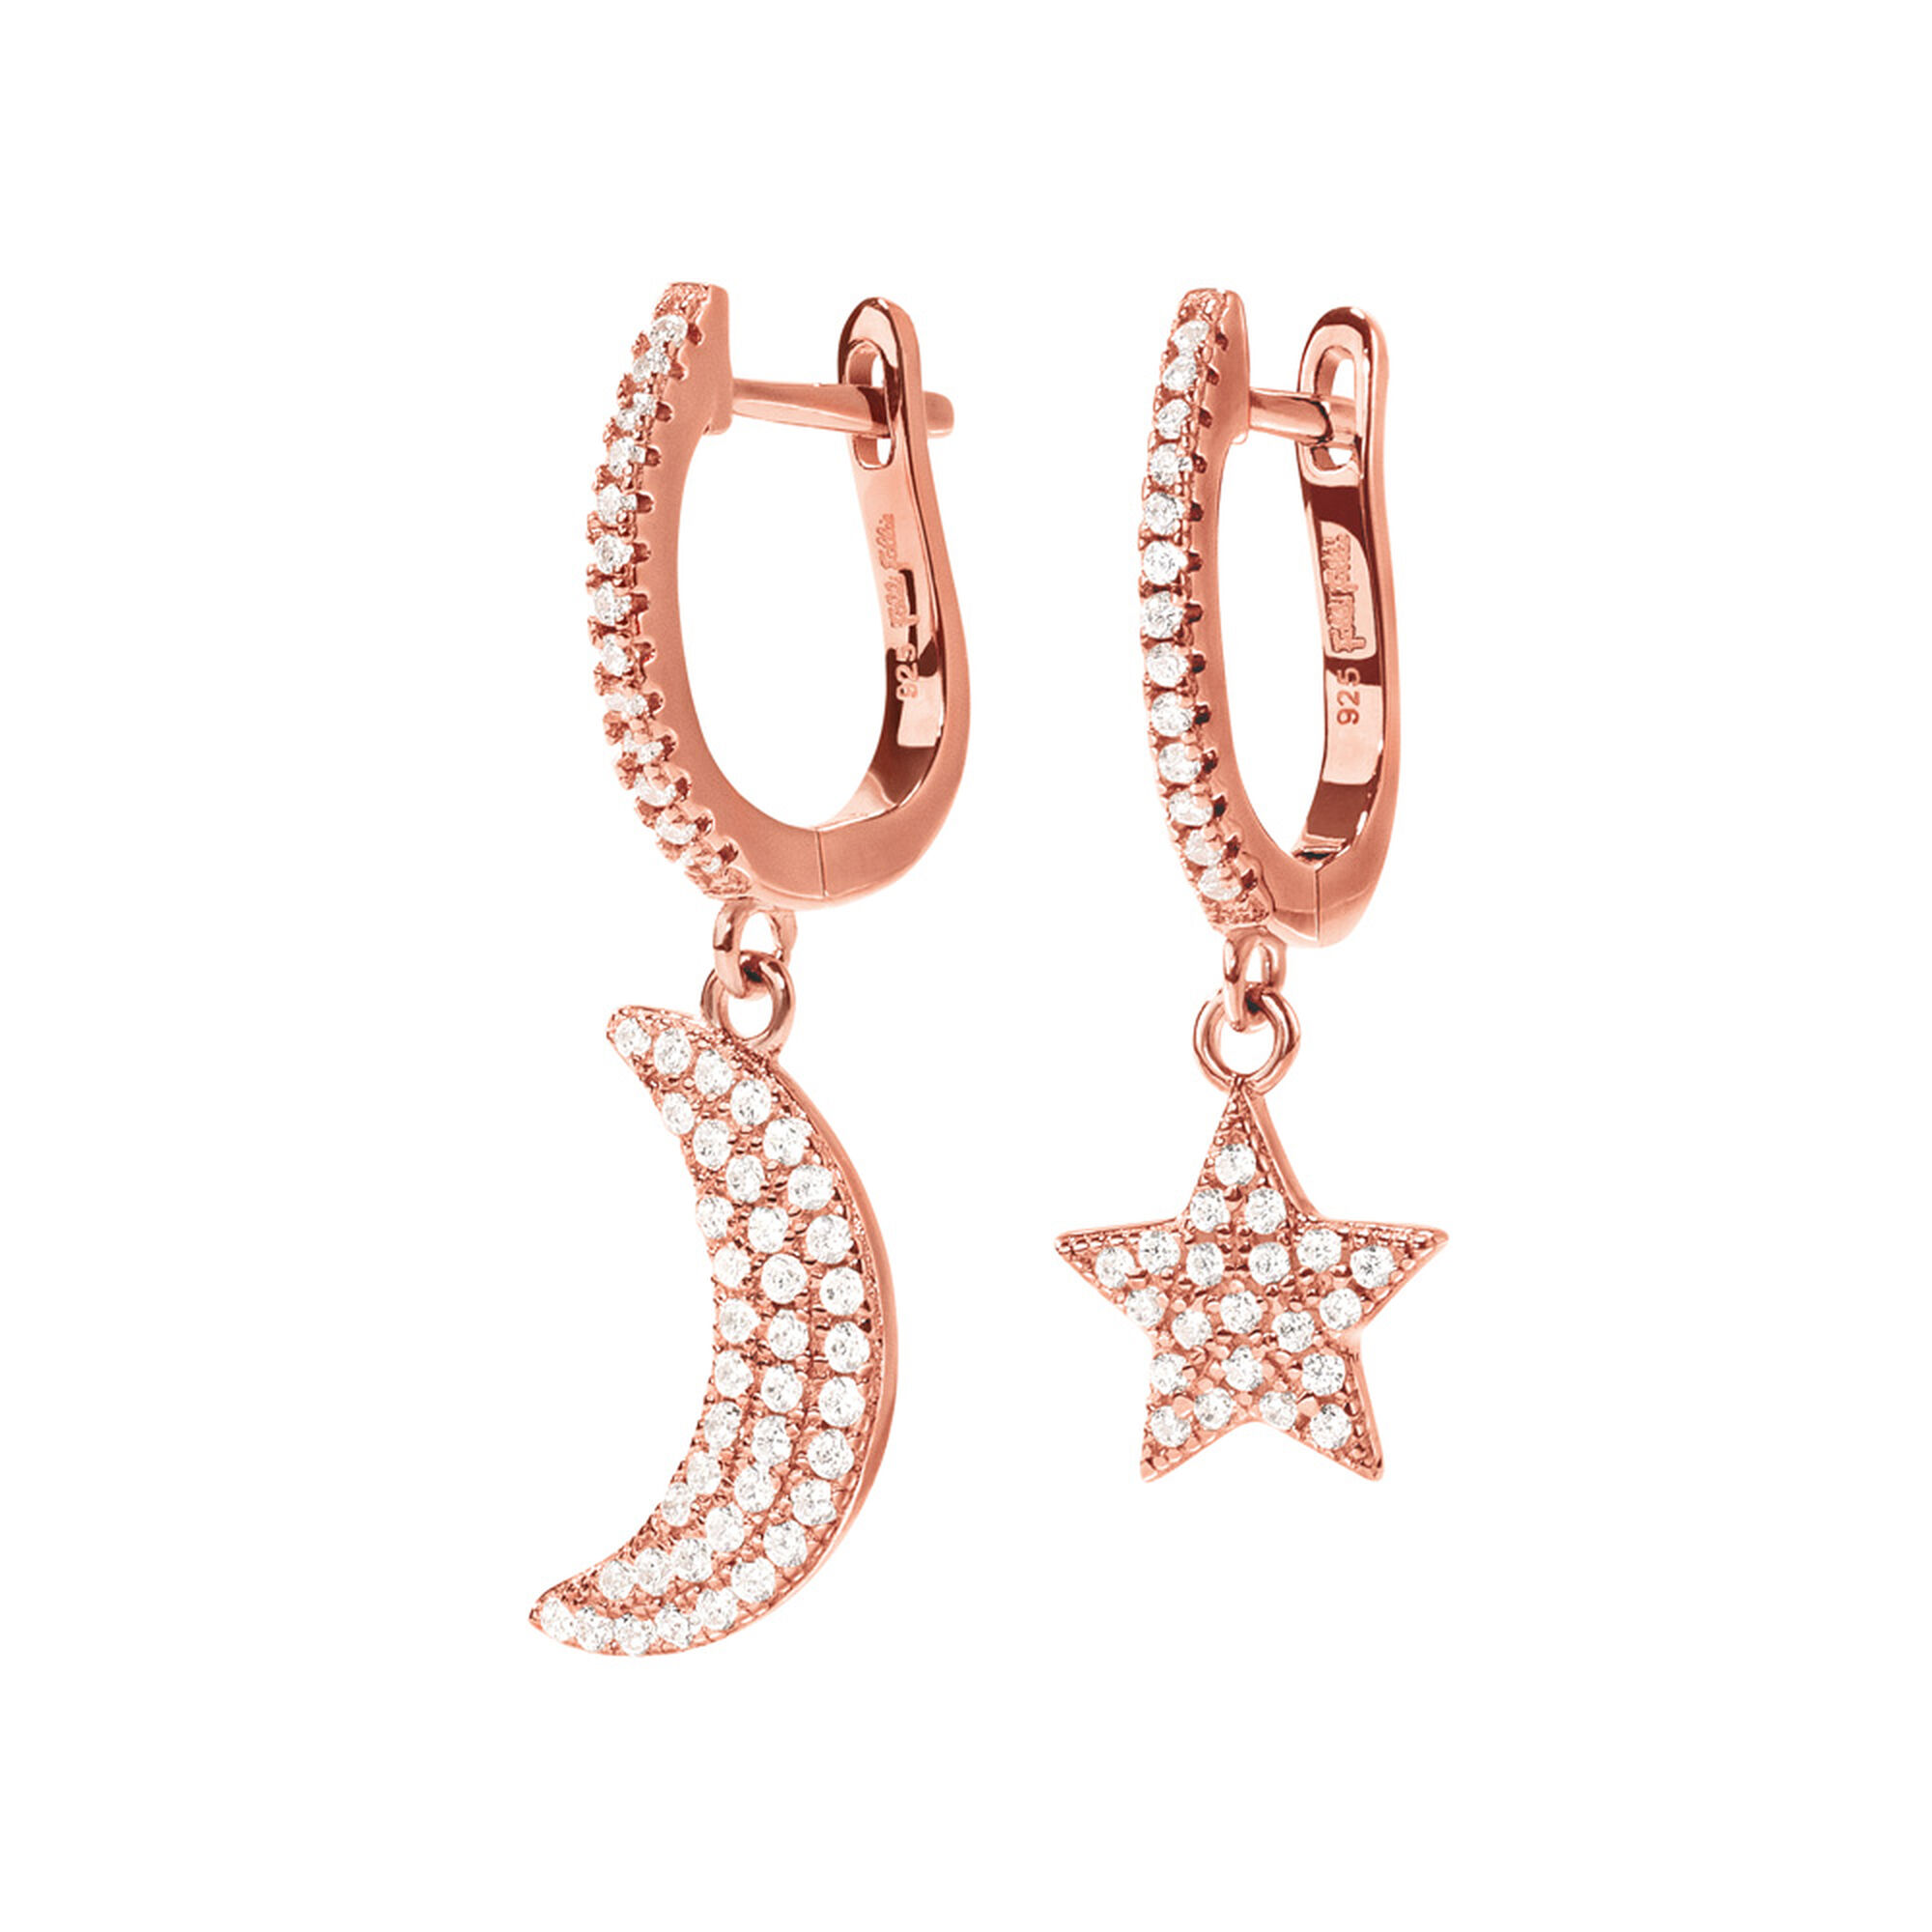 Folli Follie Charm Mates Rose Gold Plated Earrings